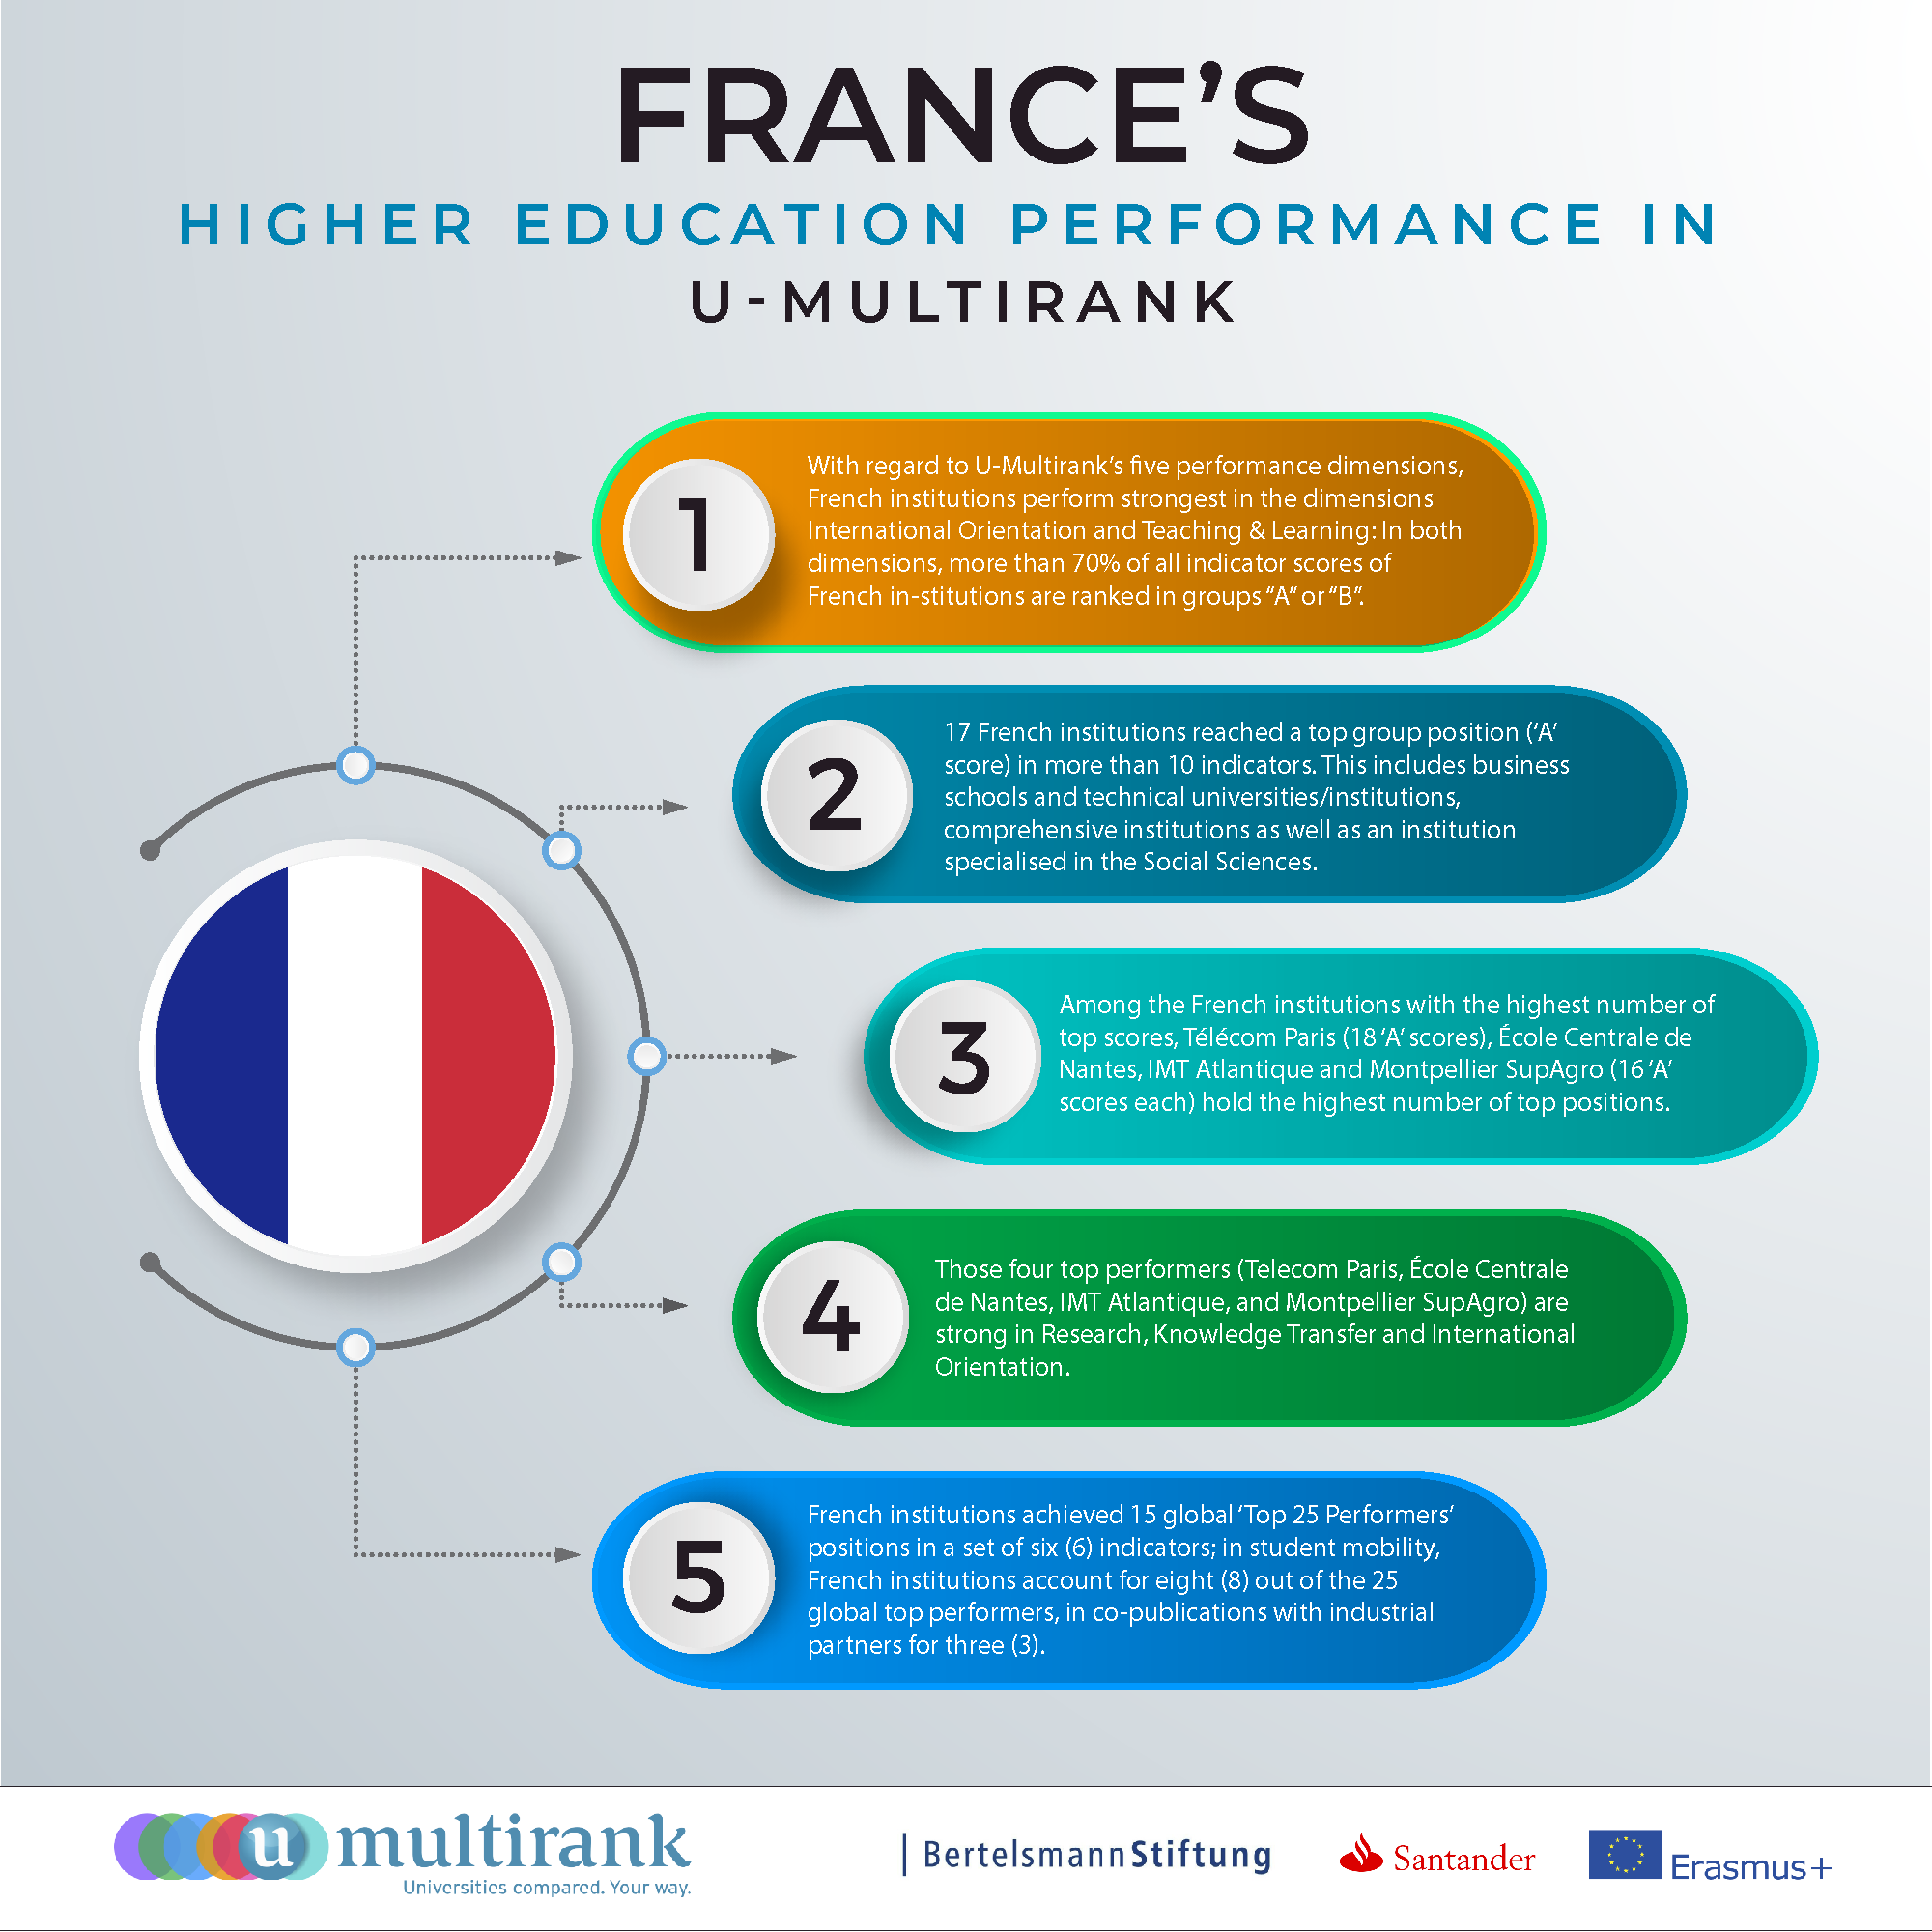 France's Higher Education Performance in U-Multirank